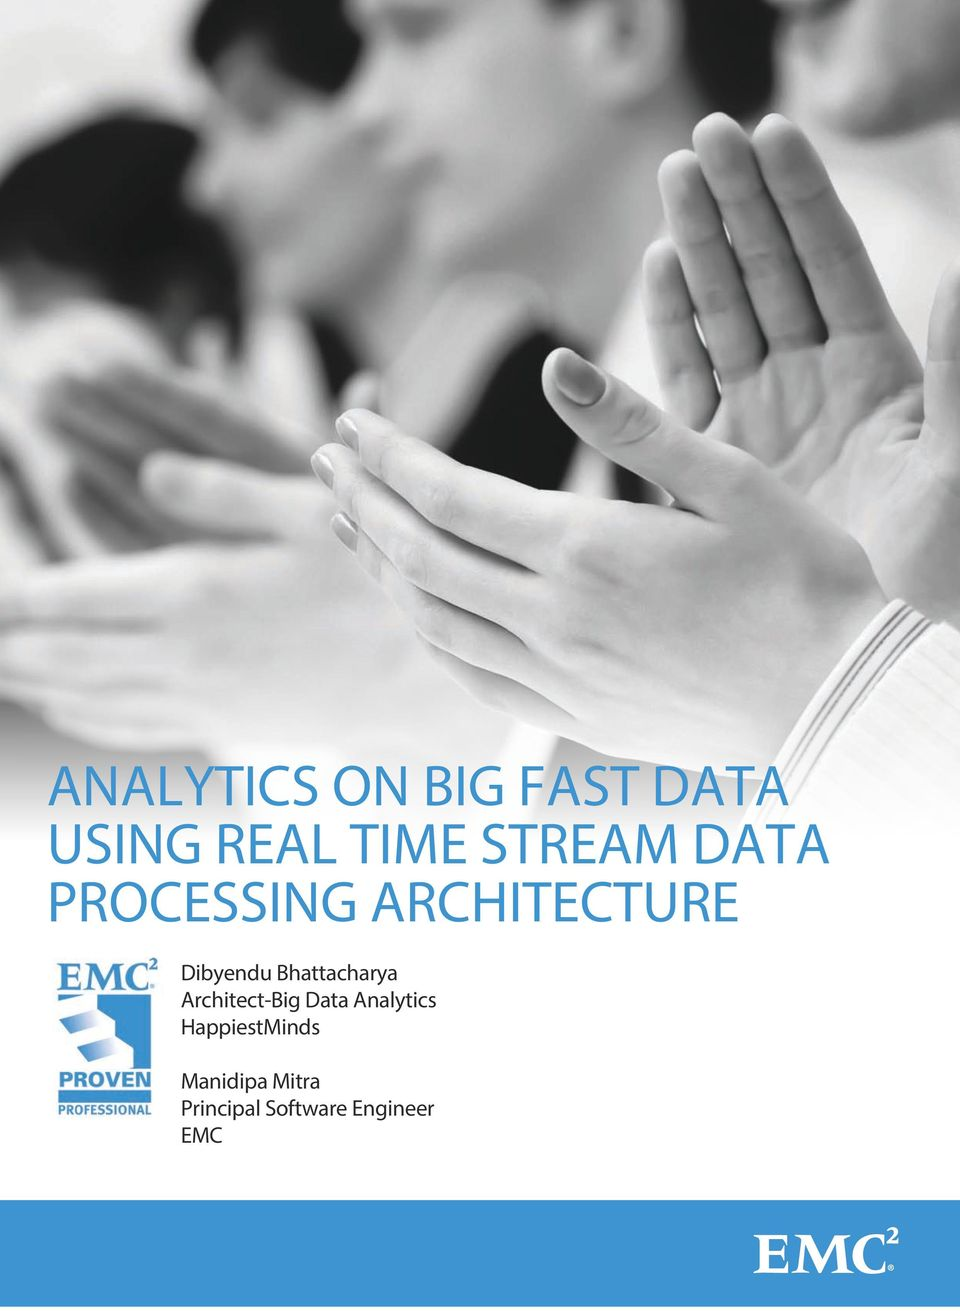 Bhattacharya Architect-Big Data Analytics